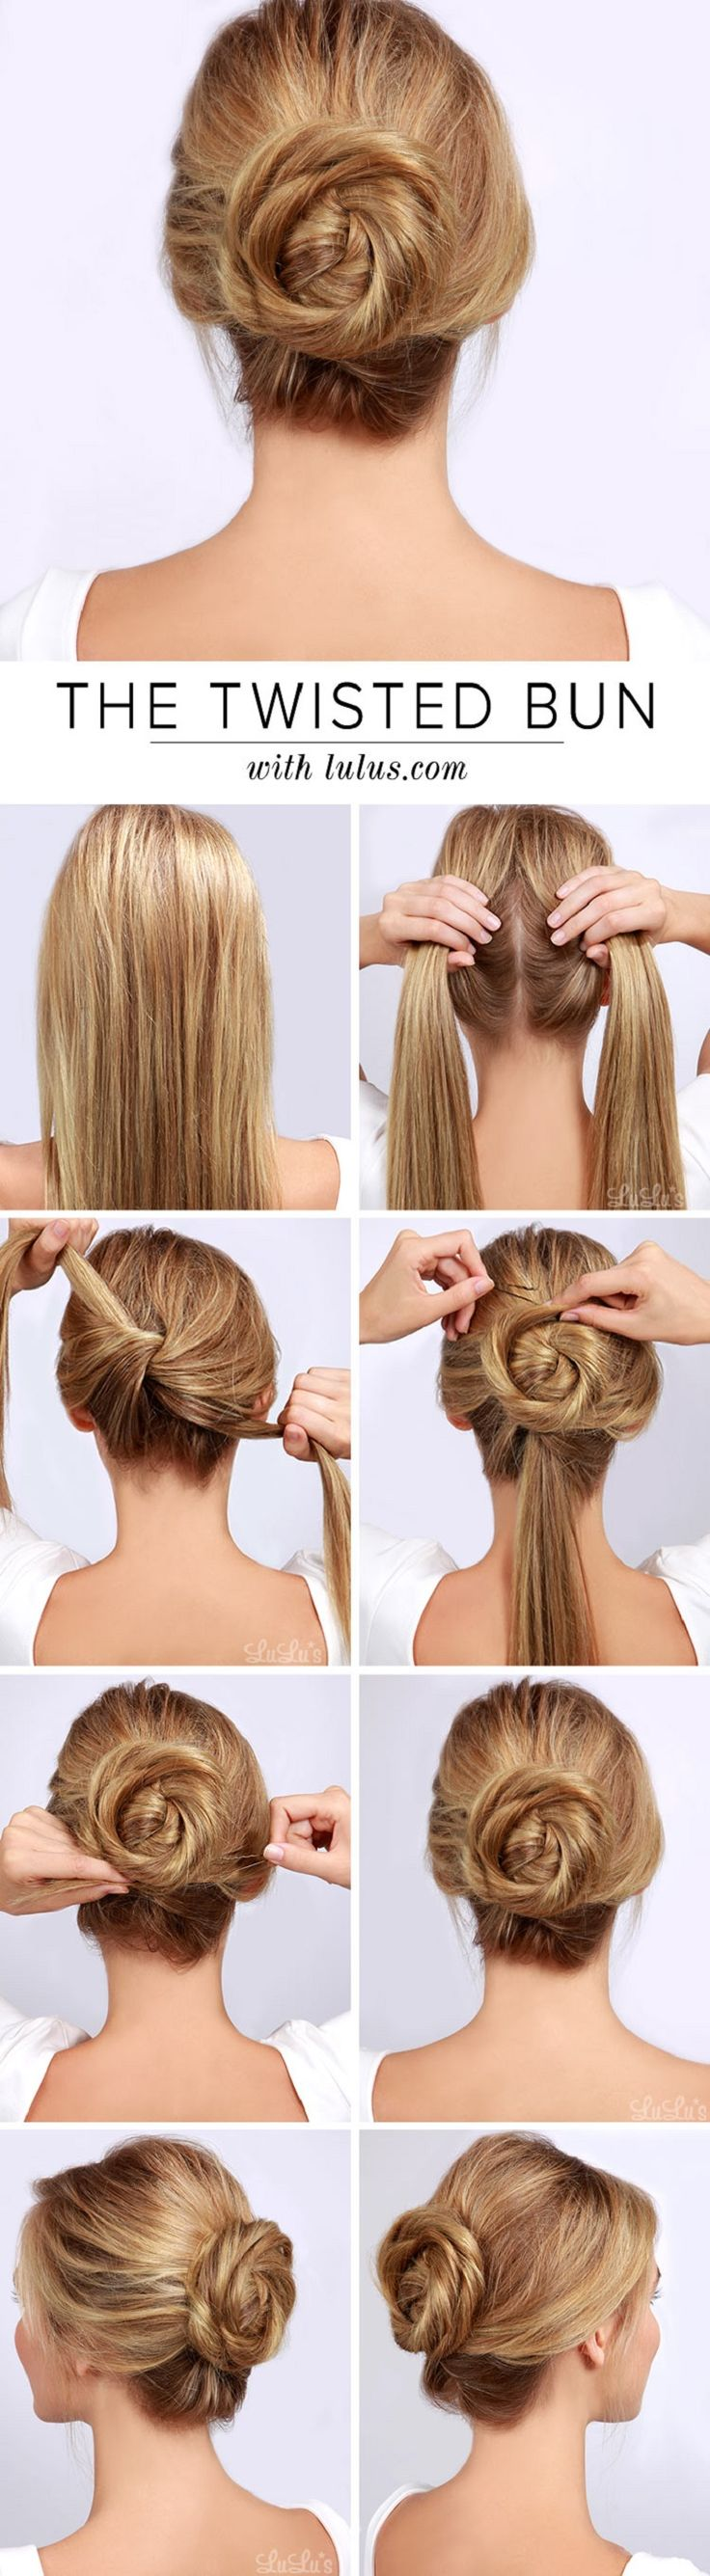 Other hairstyle tutorials on http://pinmakeuptips.com/beautiful-and-easy-hairstyles-for-work/